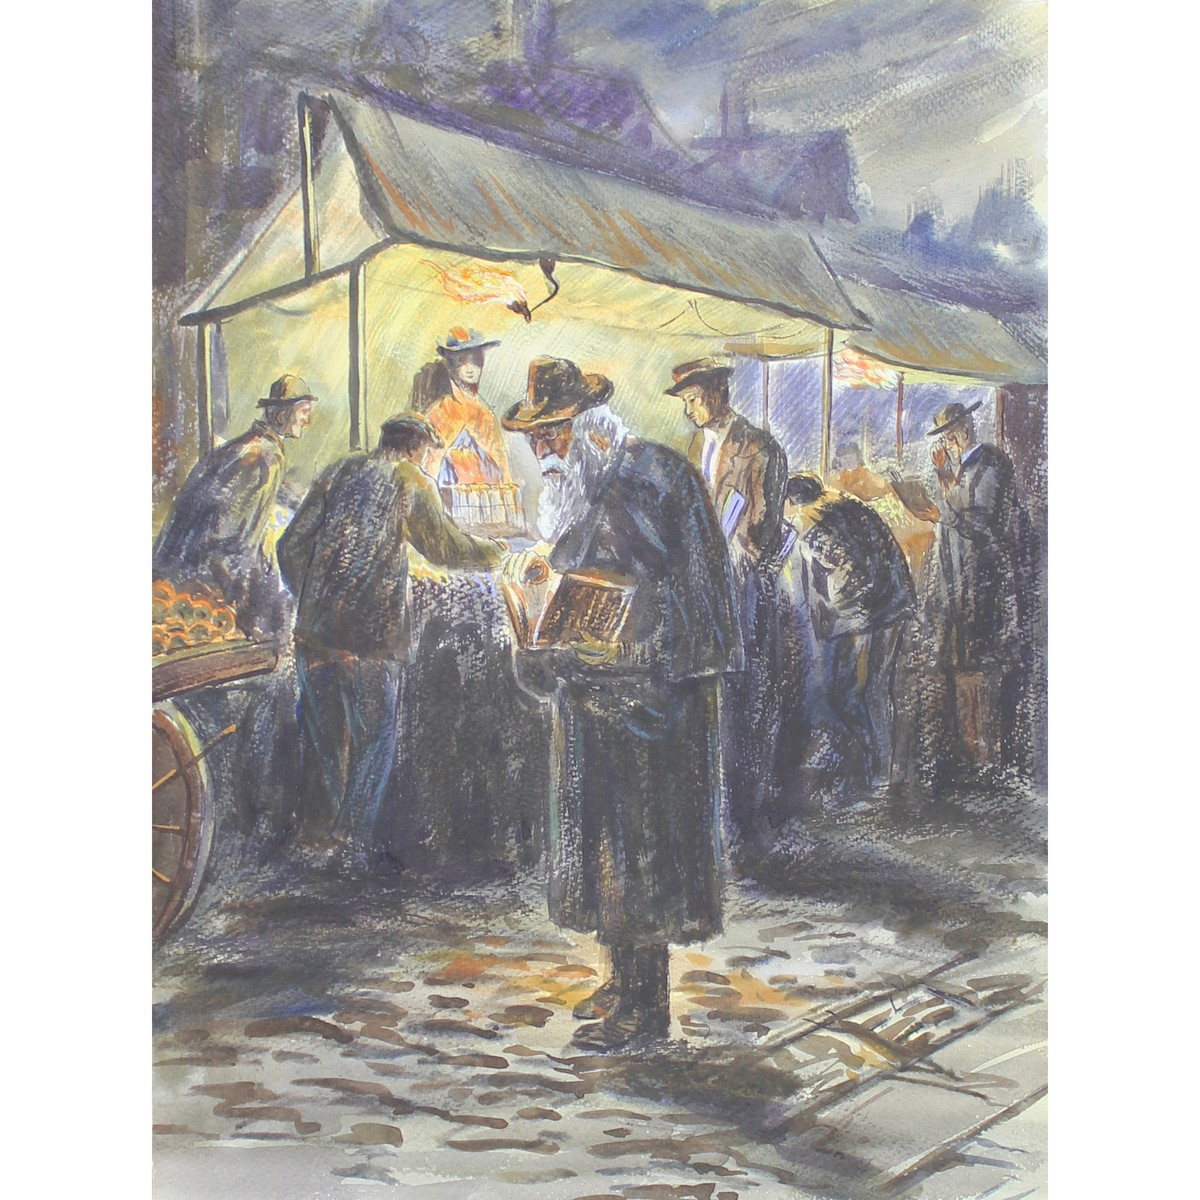 Lot 61 - Five coloured Lithographs. Victorian Street Scene, Pheasants, Market Stalls, The Thames, Horse and C